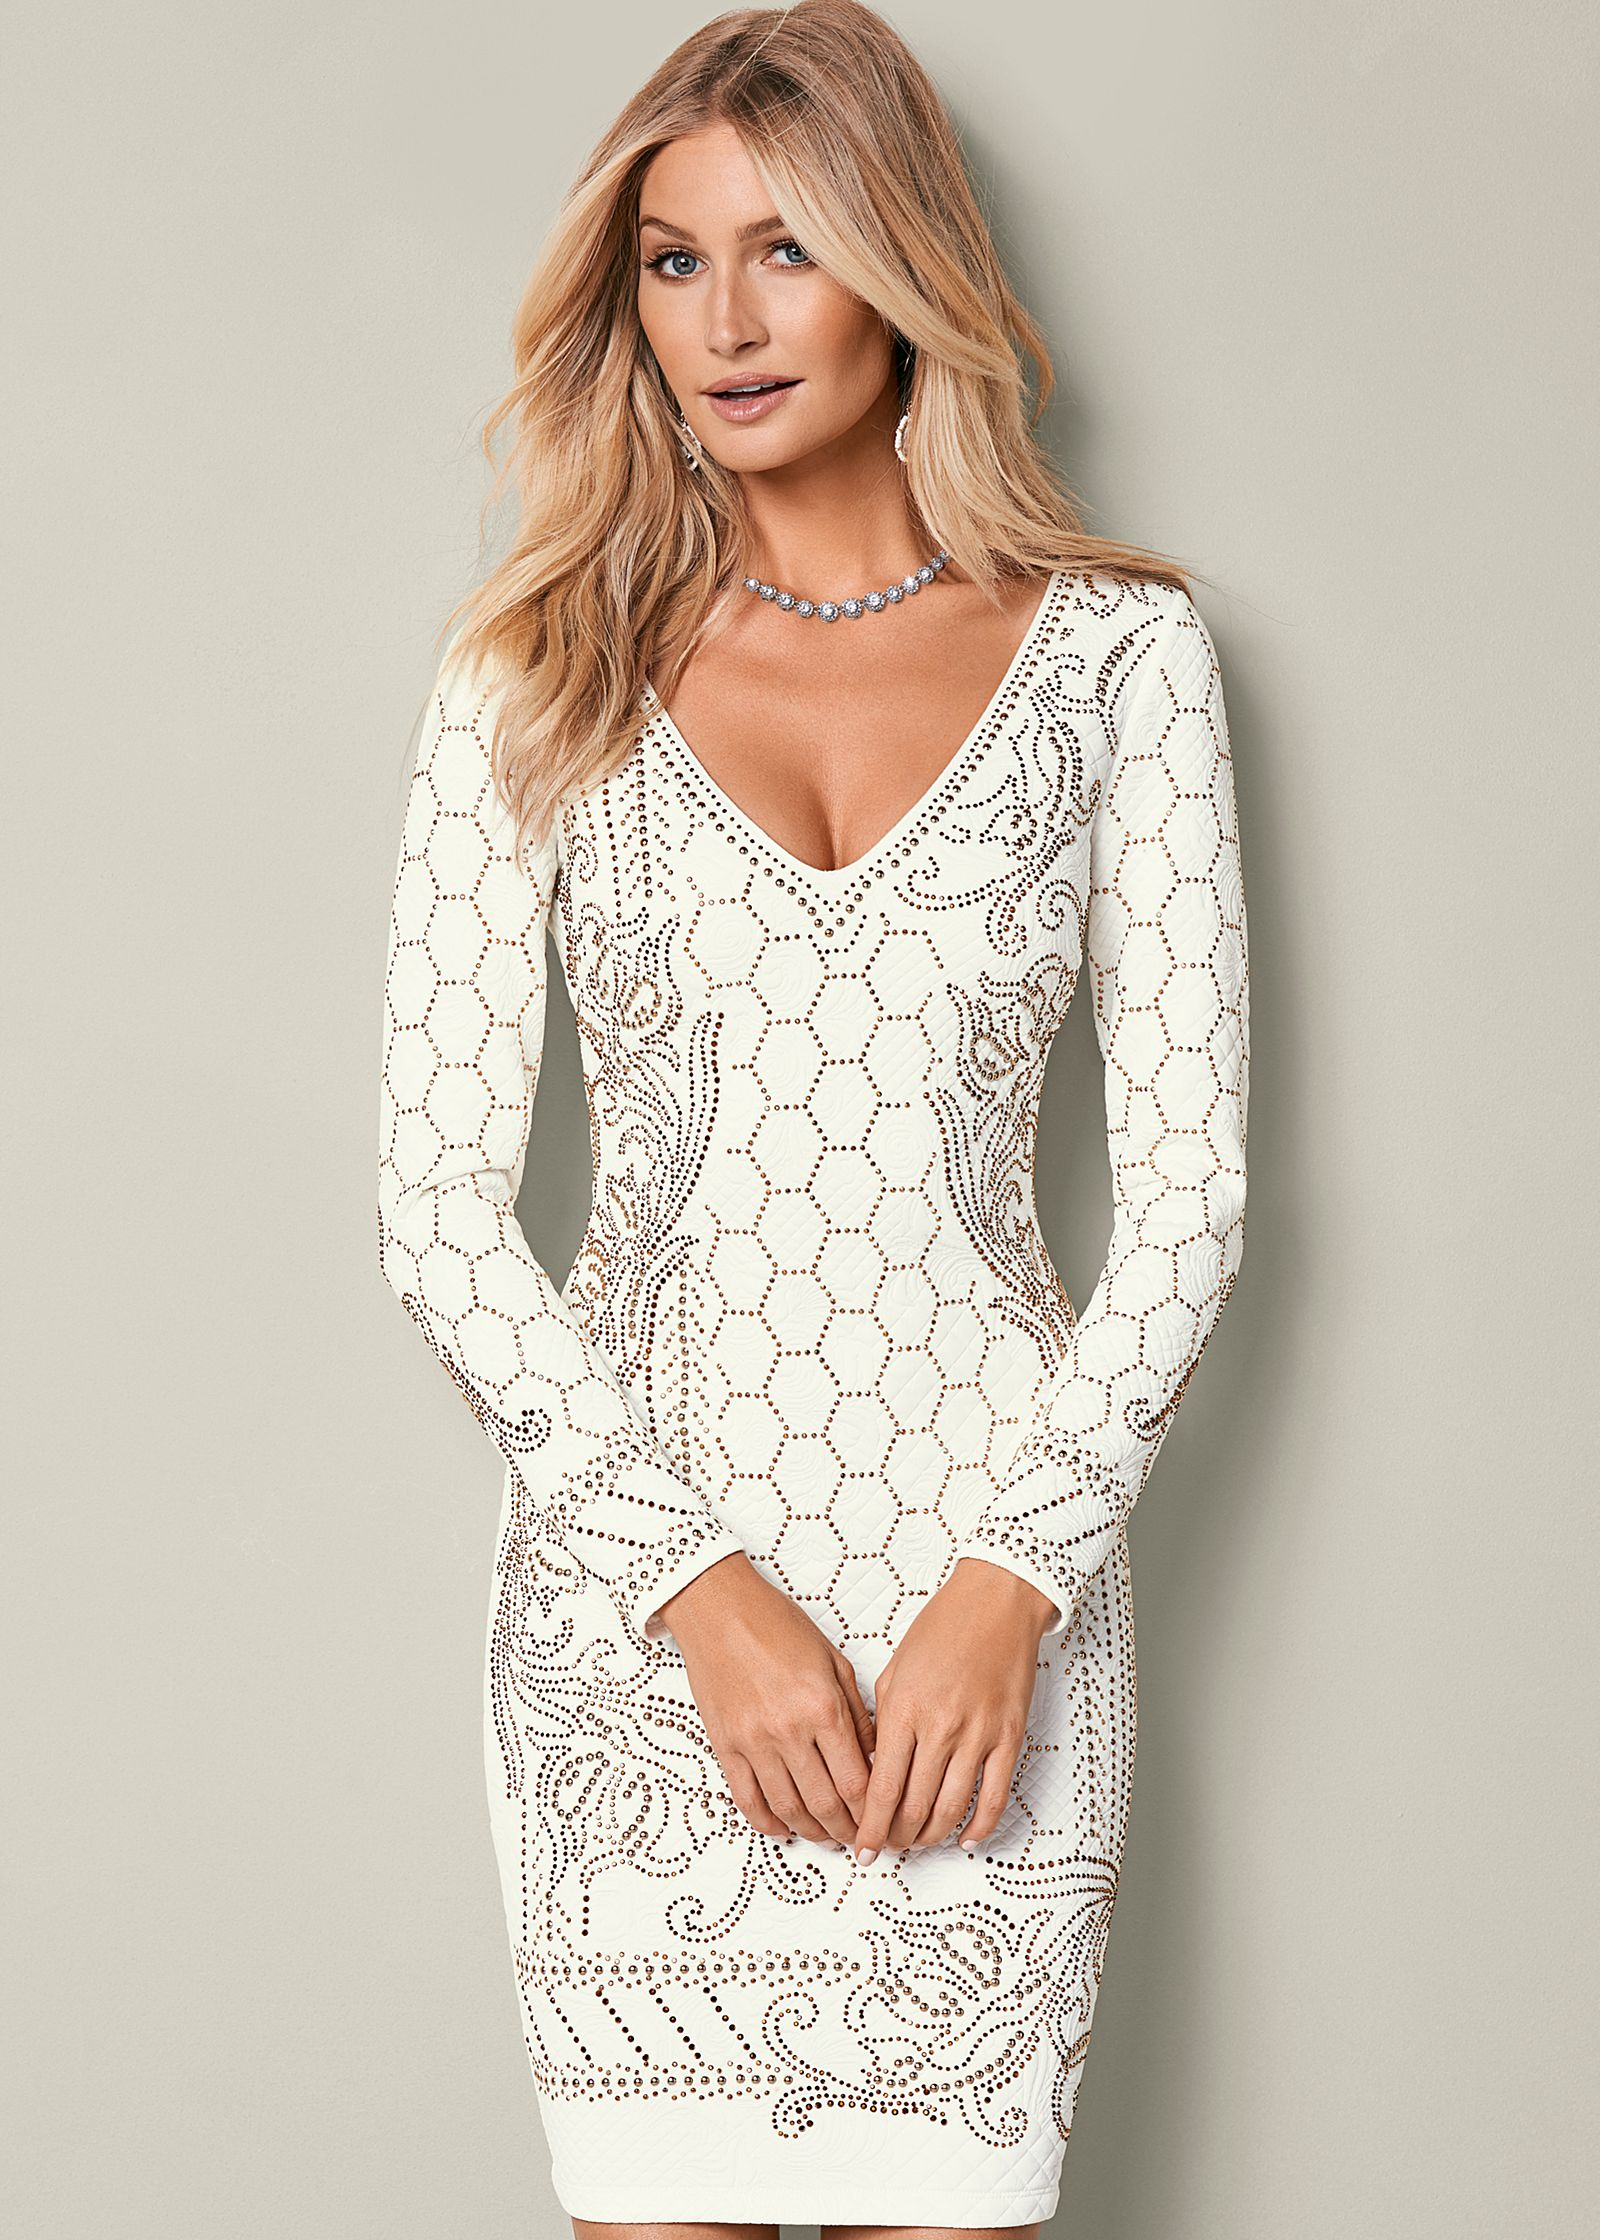 Cocktail Dresses for Seniors